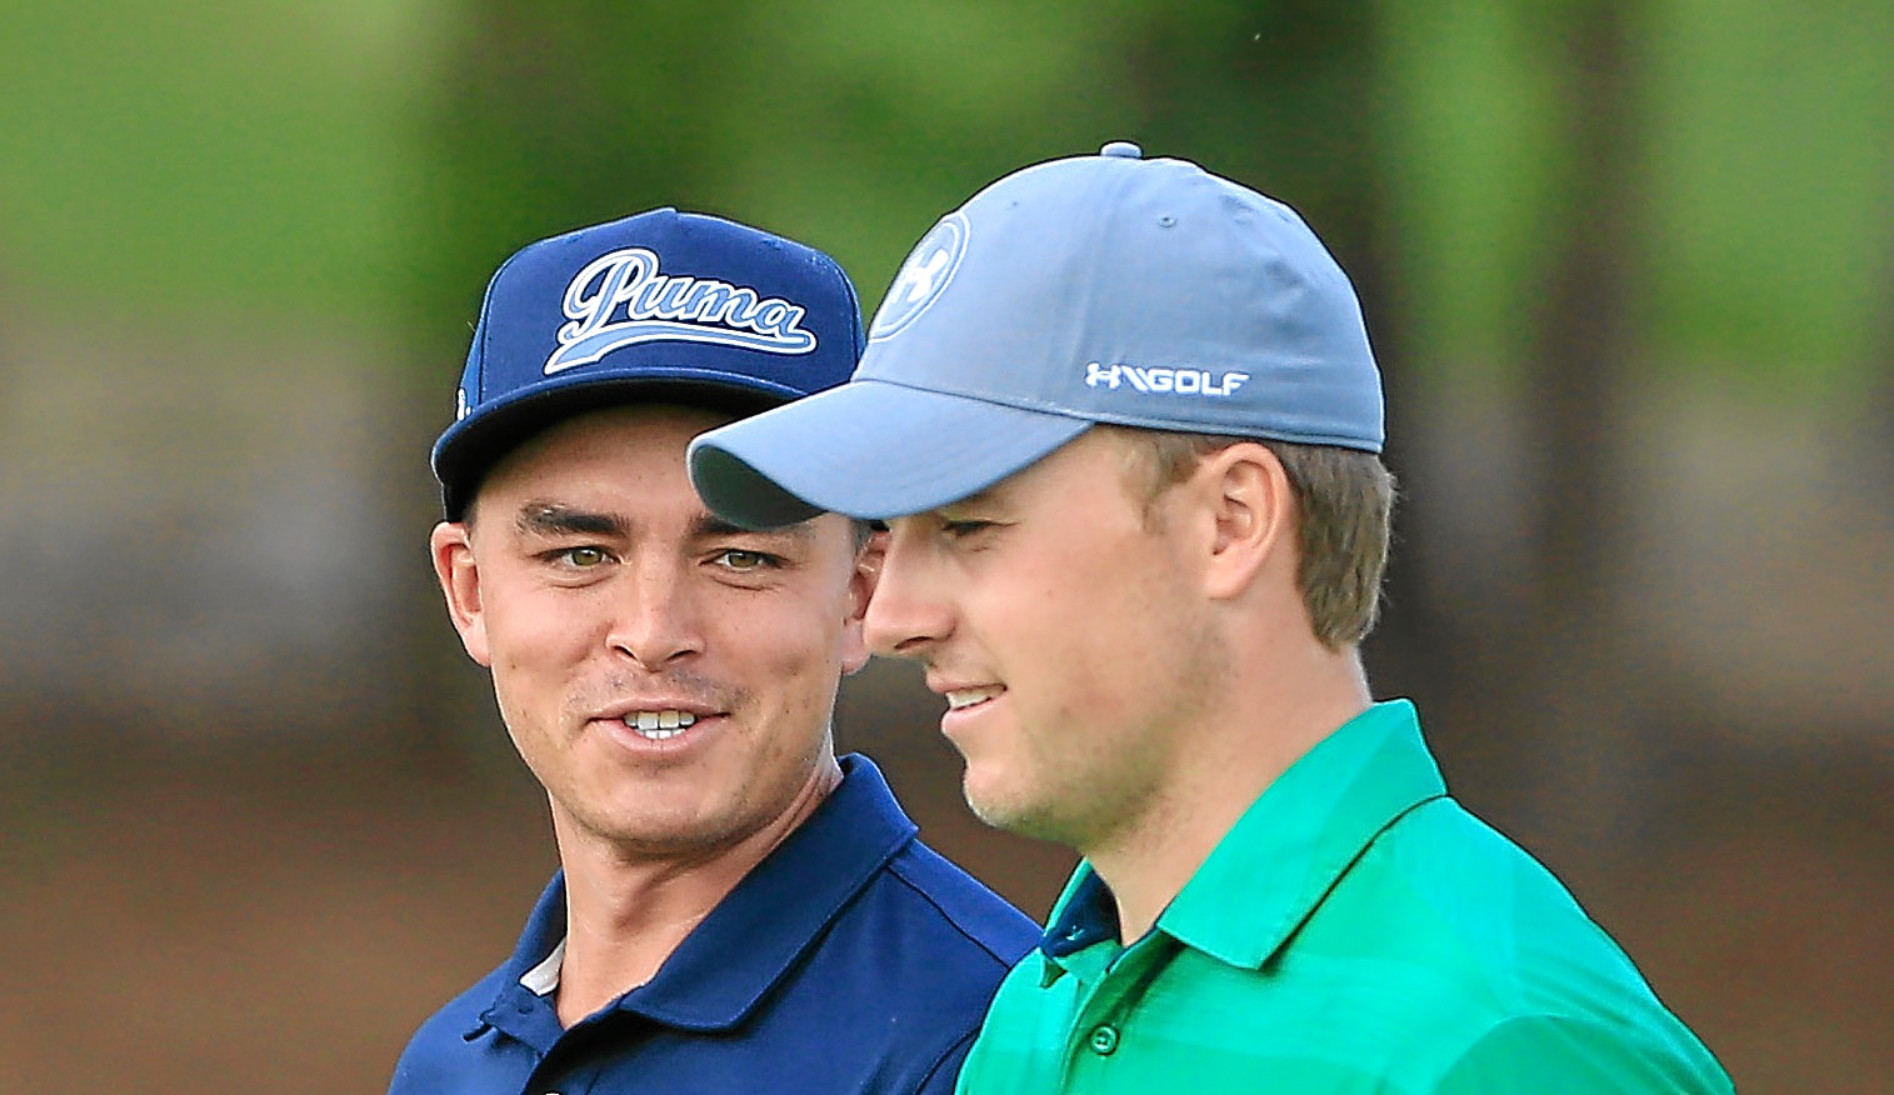 Rickie Fowler and Jordan Spieth during a practice round at TPC Sawgrass.